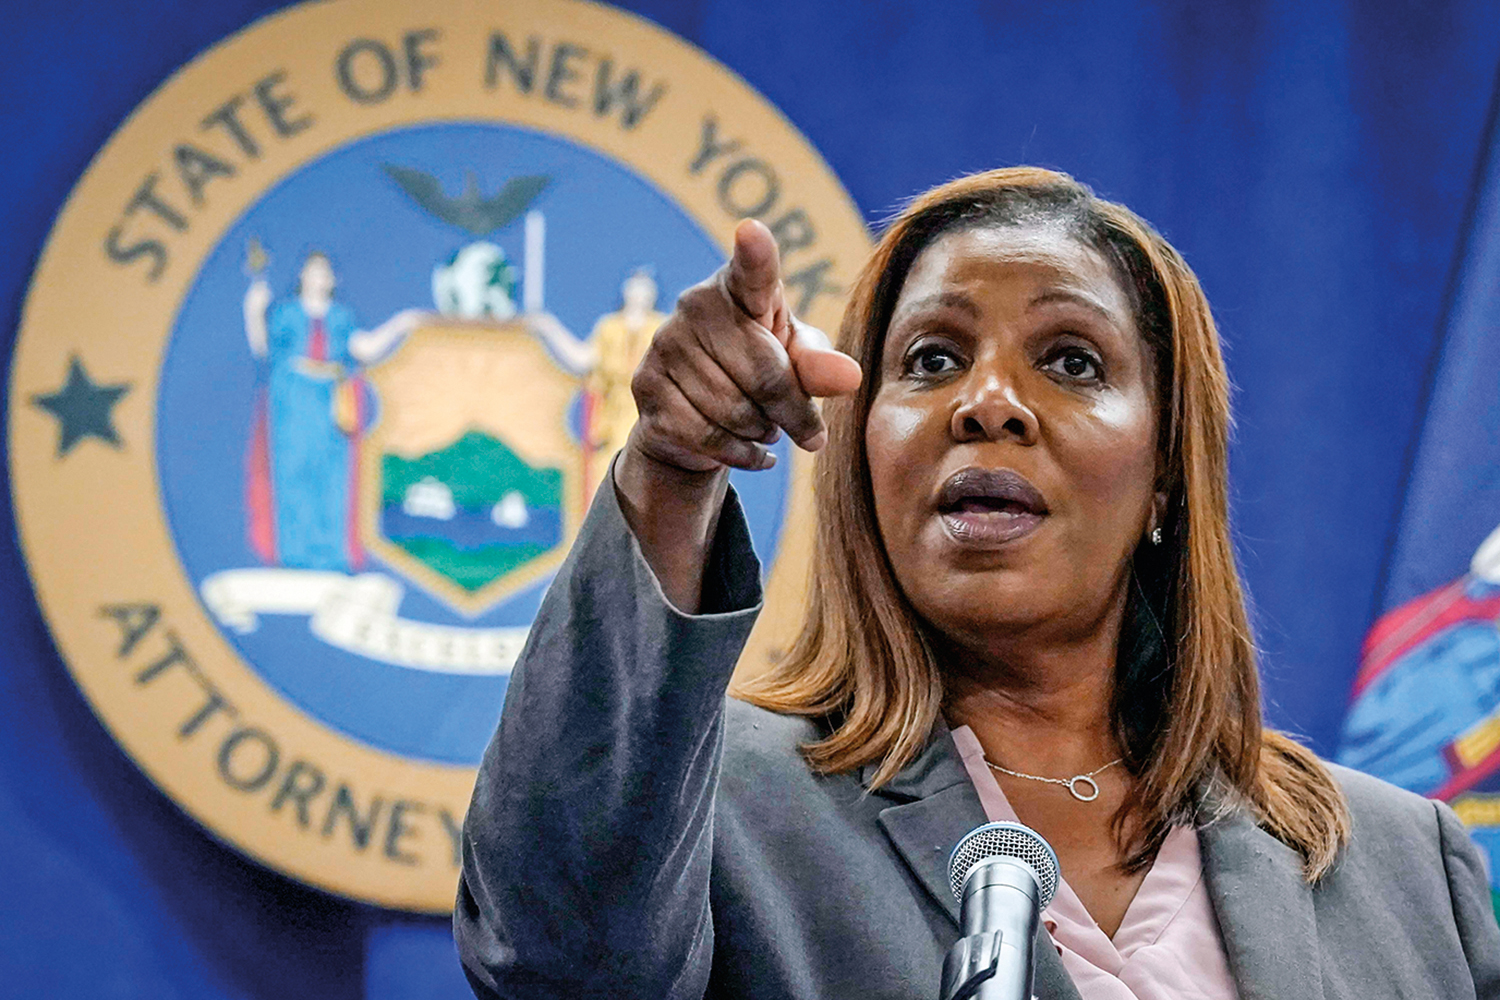 FILE - This photo from Friday May 21, 2021, shows New York Attorney General Letitia James at a news conference in New York. James is overseeing an interview of Gov. Andrew Cuomo by investigators with the state attorney general's office, who are looking into sexual harassment allegations as the probe nears its conclusion. Credito: Richard Drew/AP/Imageplus